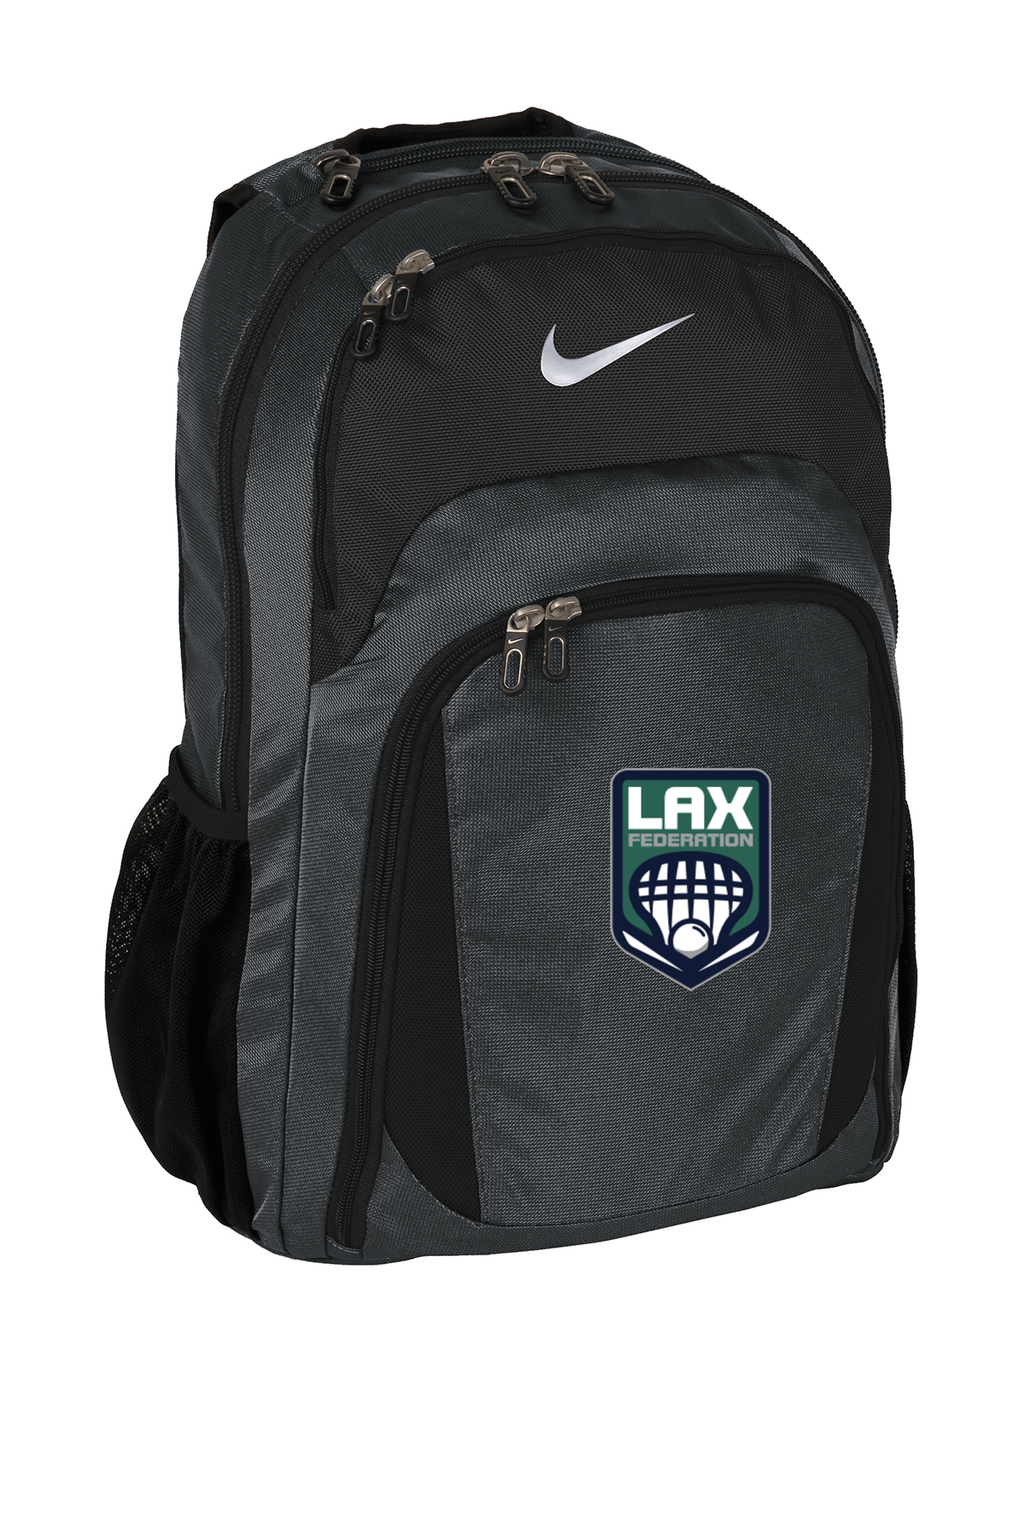 LAX FED Nike Backpack